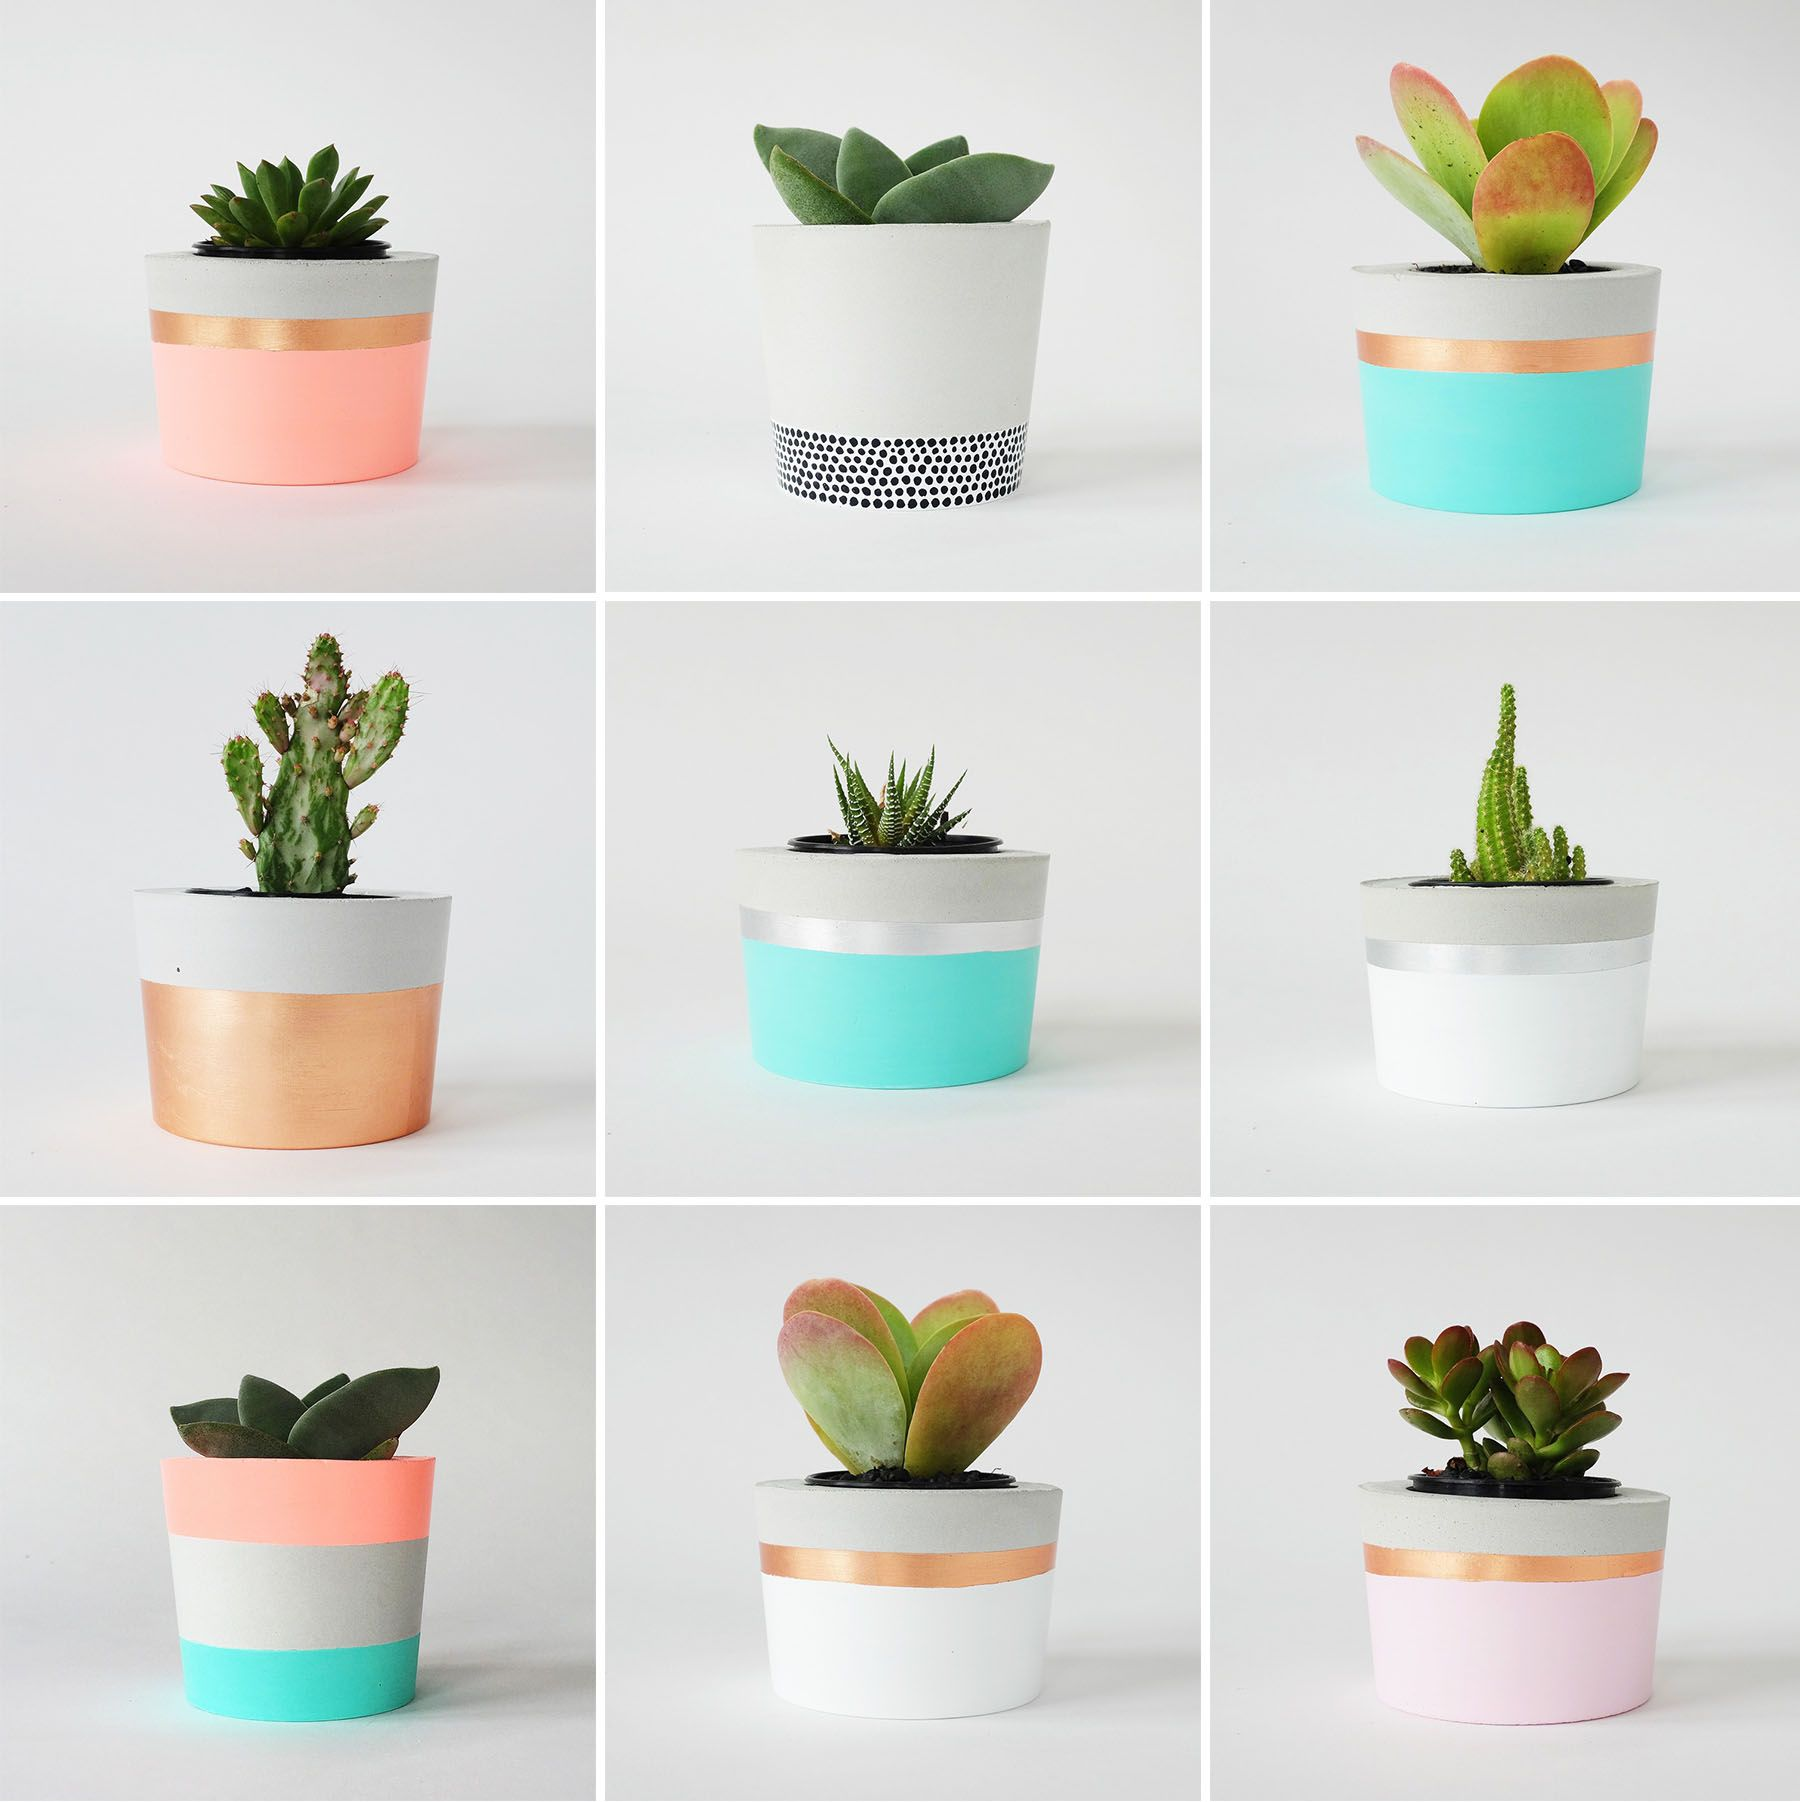 astonishing cement flower pots. PLANT LIFE  CORAL HERB hibrid Concrete PotsDiy Herbs Plants and Cacti